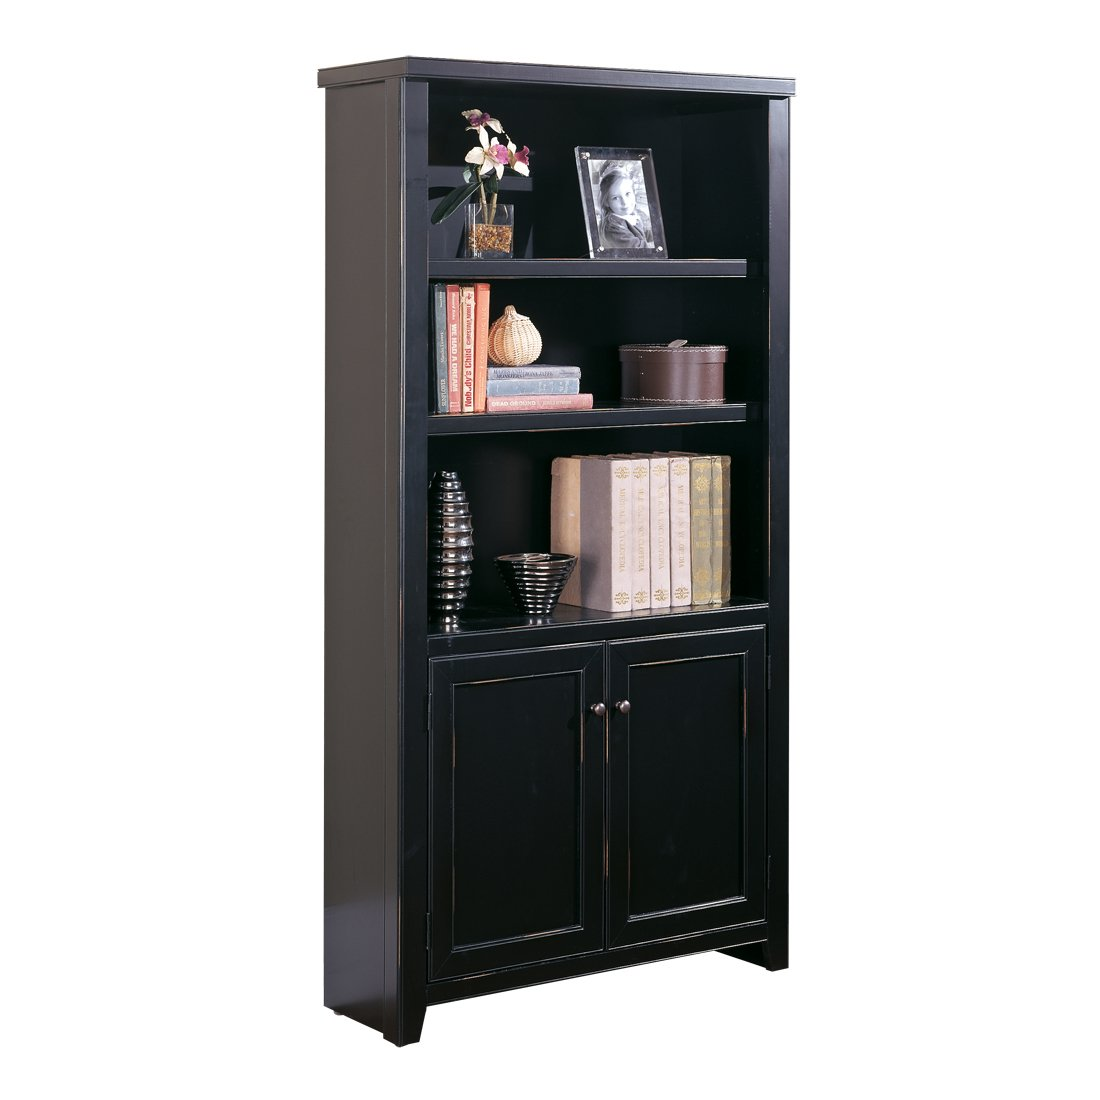 Martin Furniture Tribeca Loft Cherry Library Bookcase – Fully Assembled